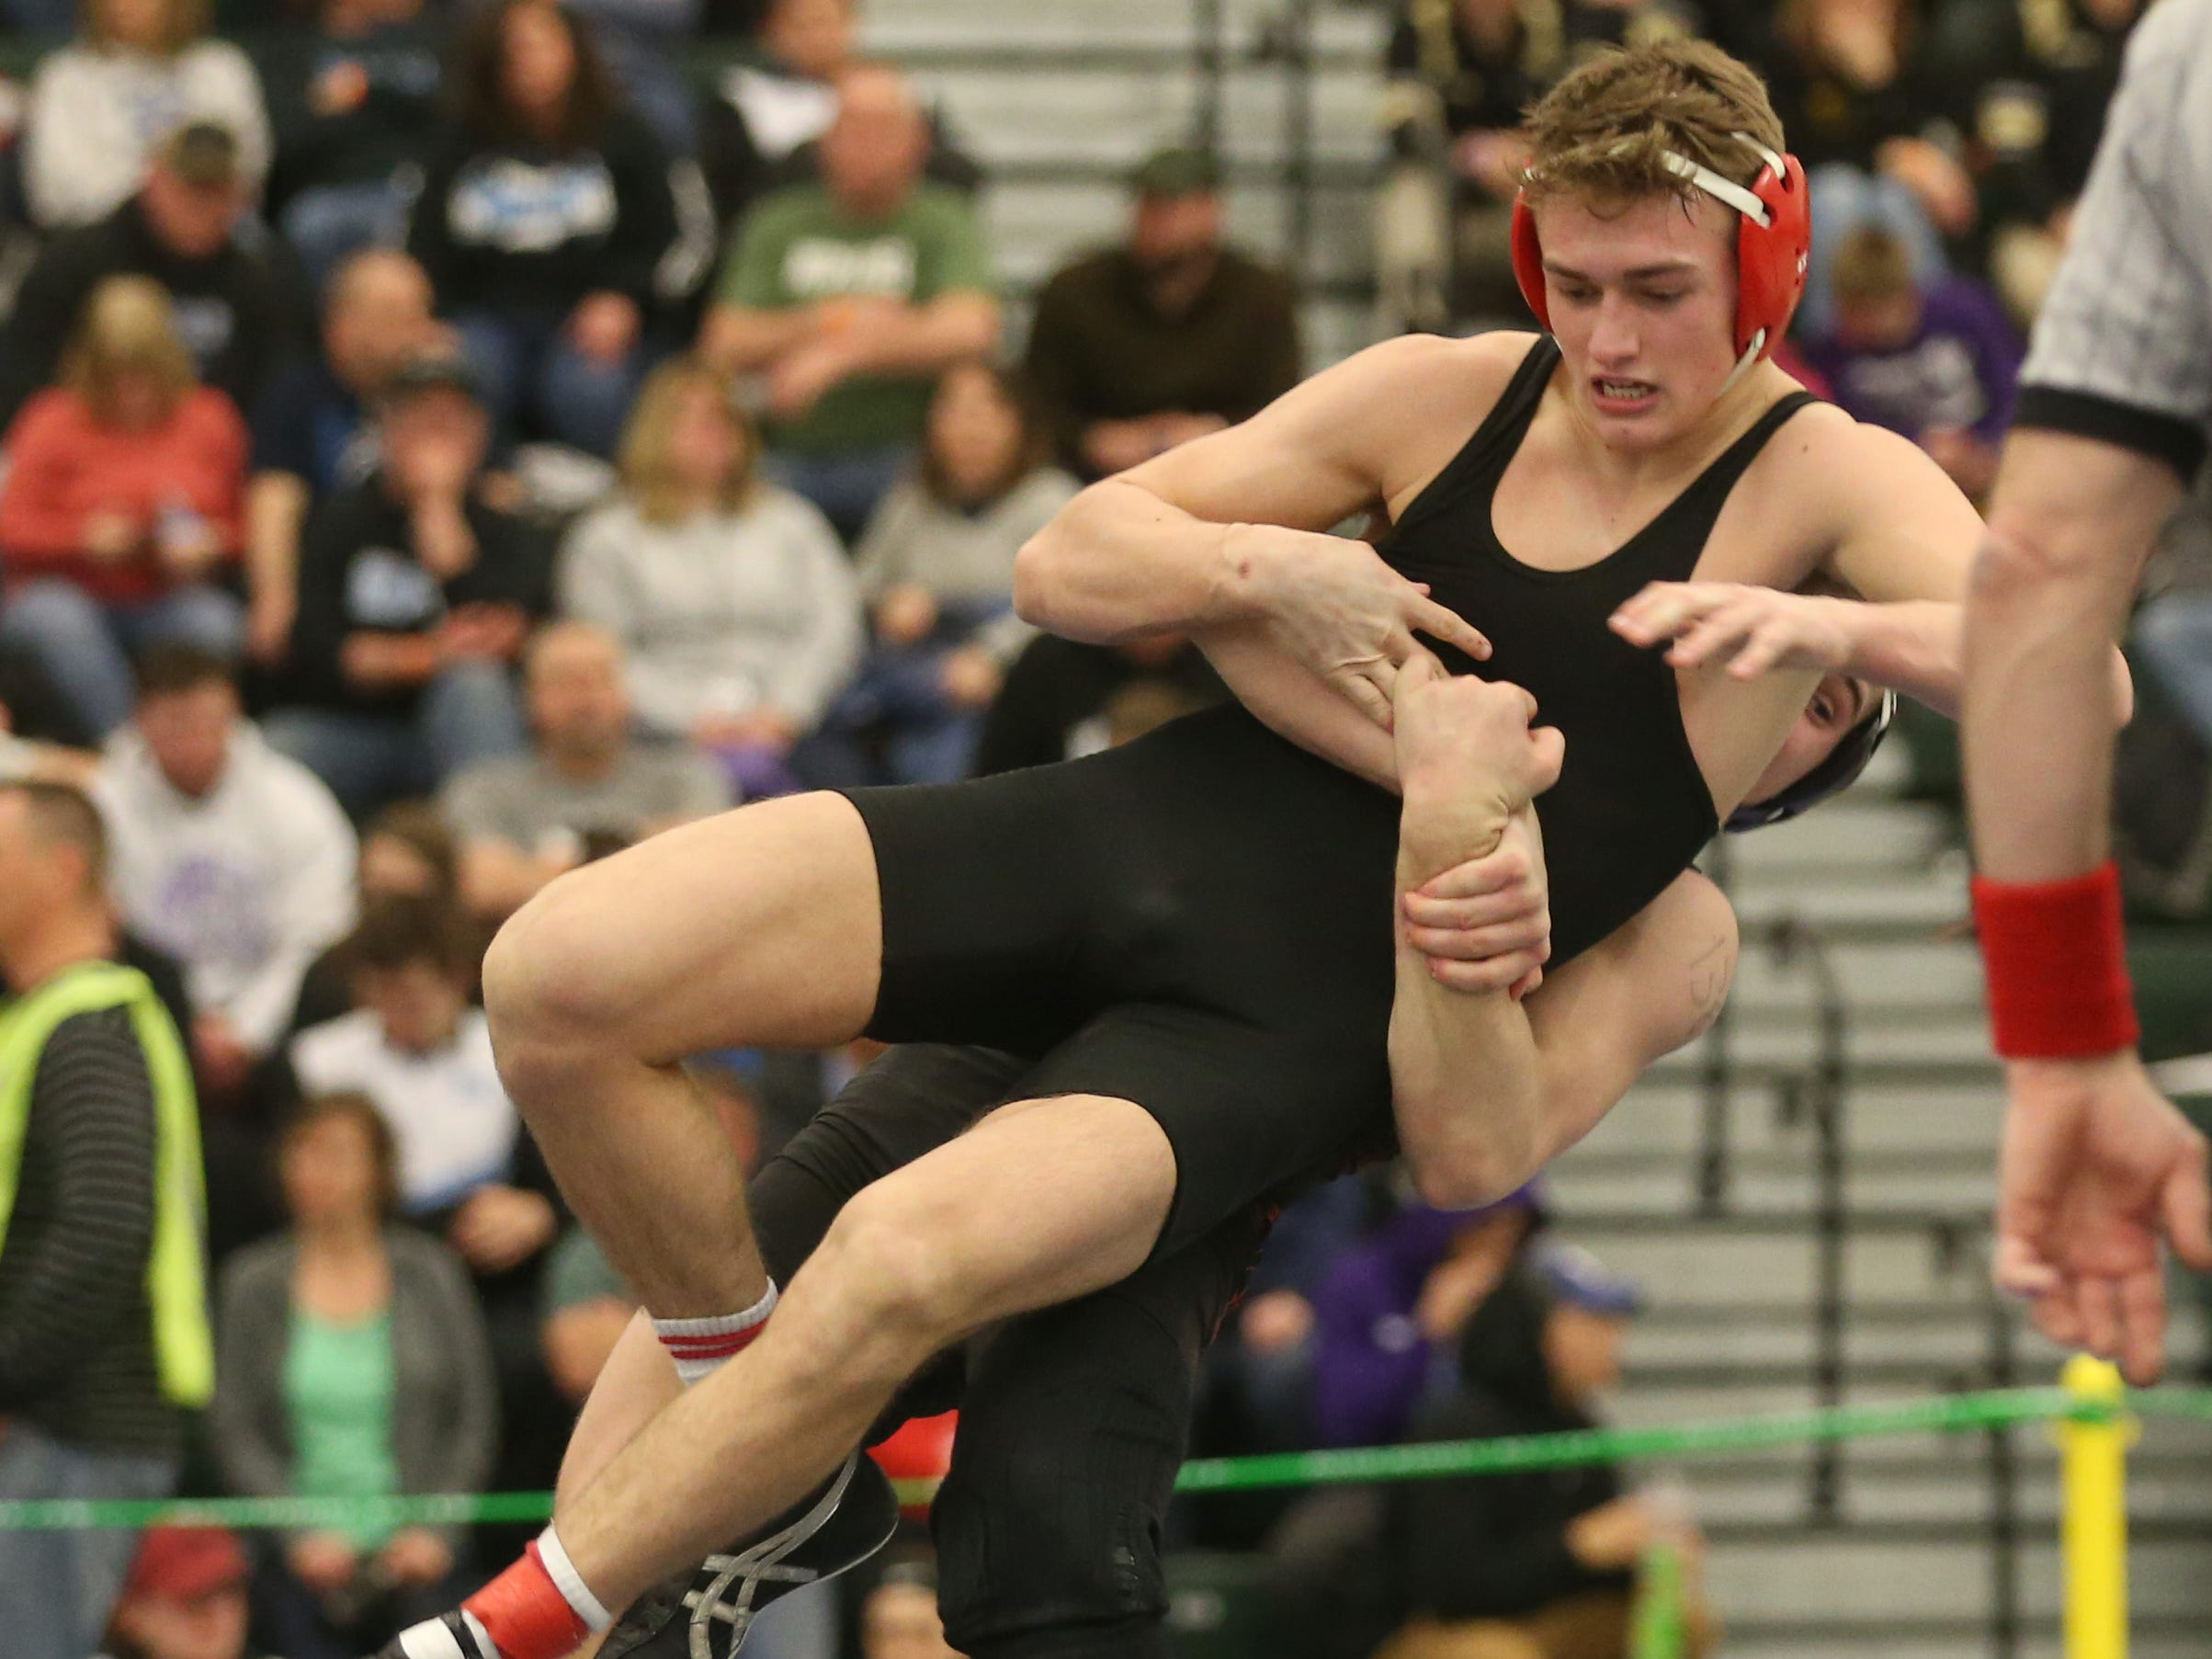 at the 52nd Annual State Wrestling Qualifier at the College at Brockport Saturday, Feb. 9, 2019.